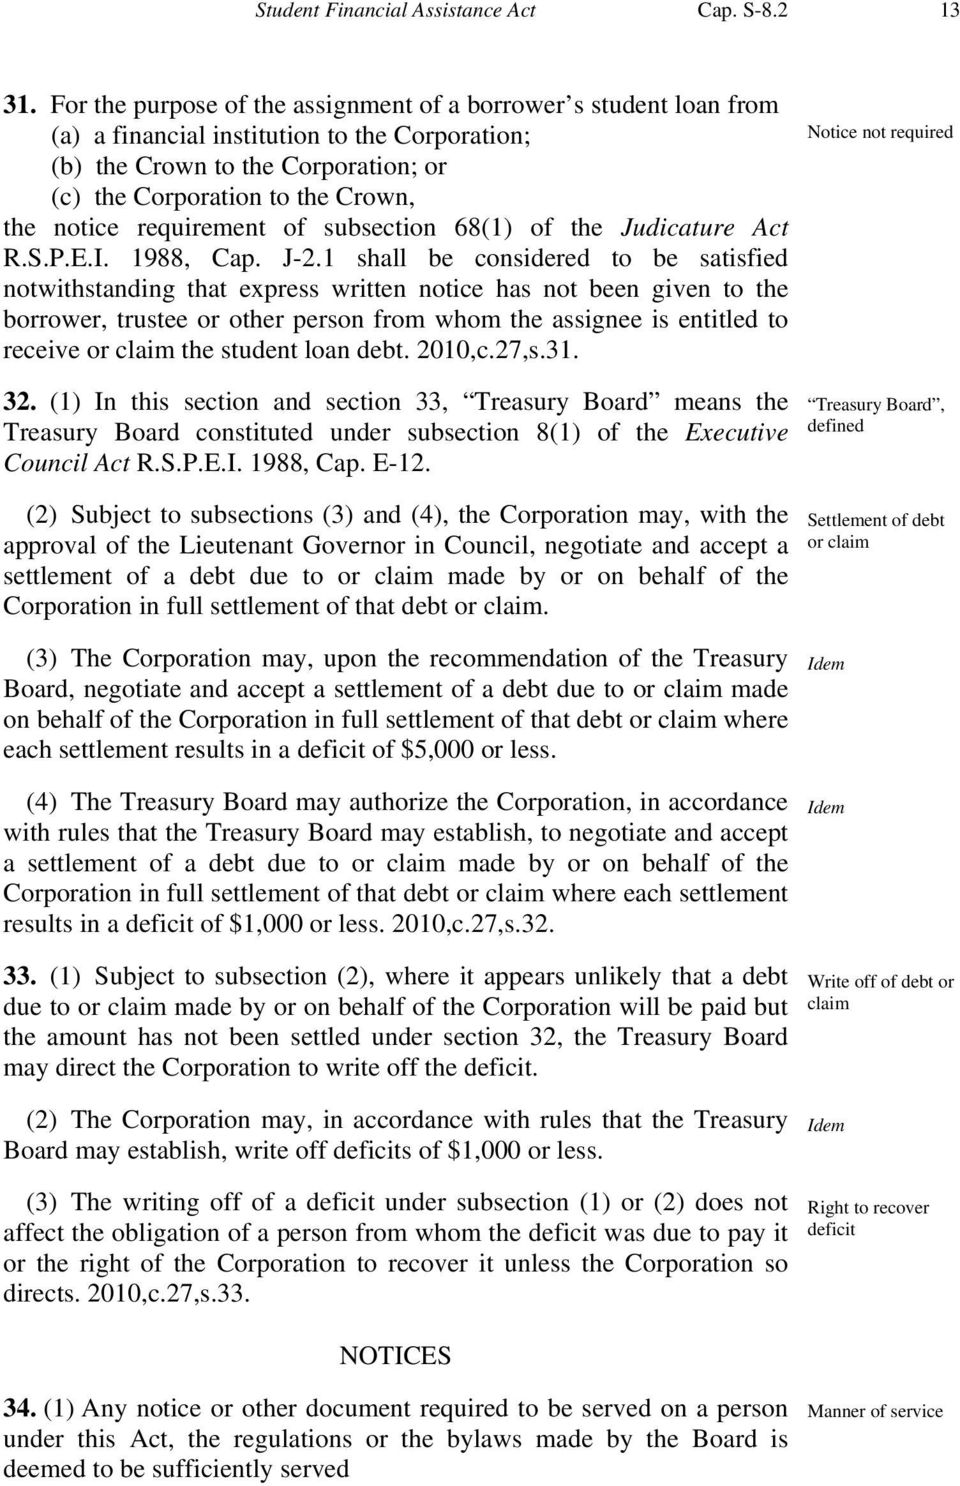 requirement of subsection 68(1) of the Judicature Act R.S.P.E.I. 1988, Cap. J-2.